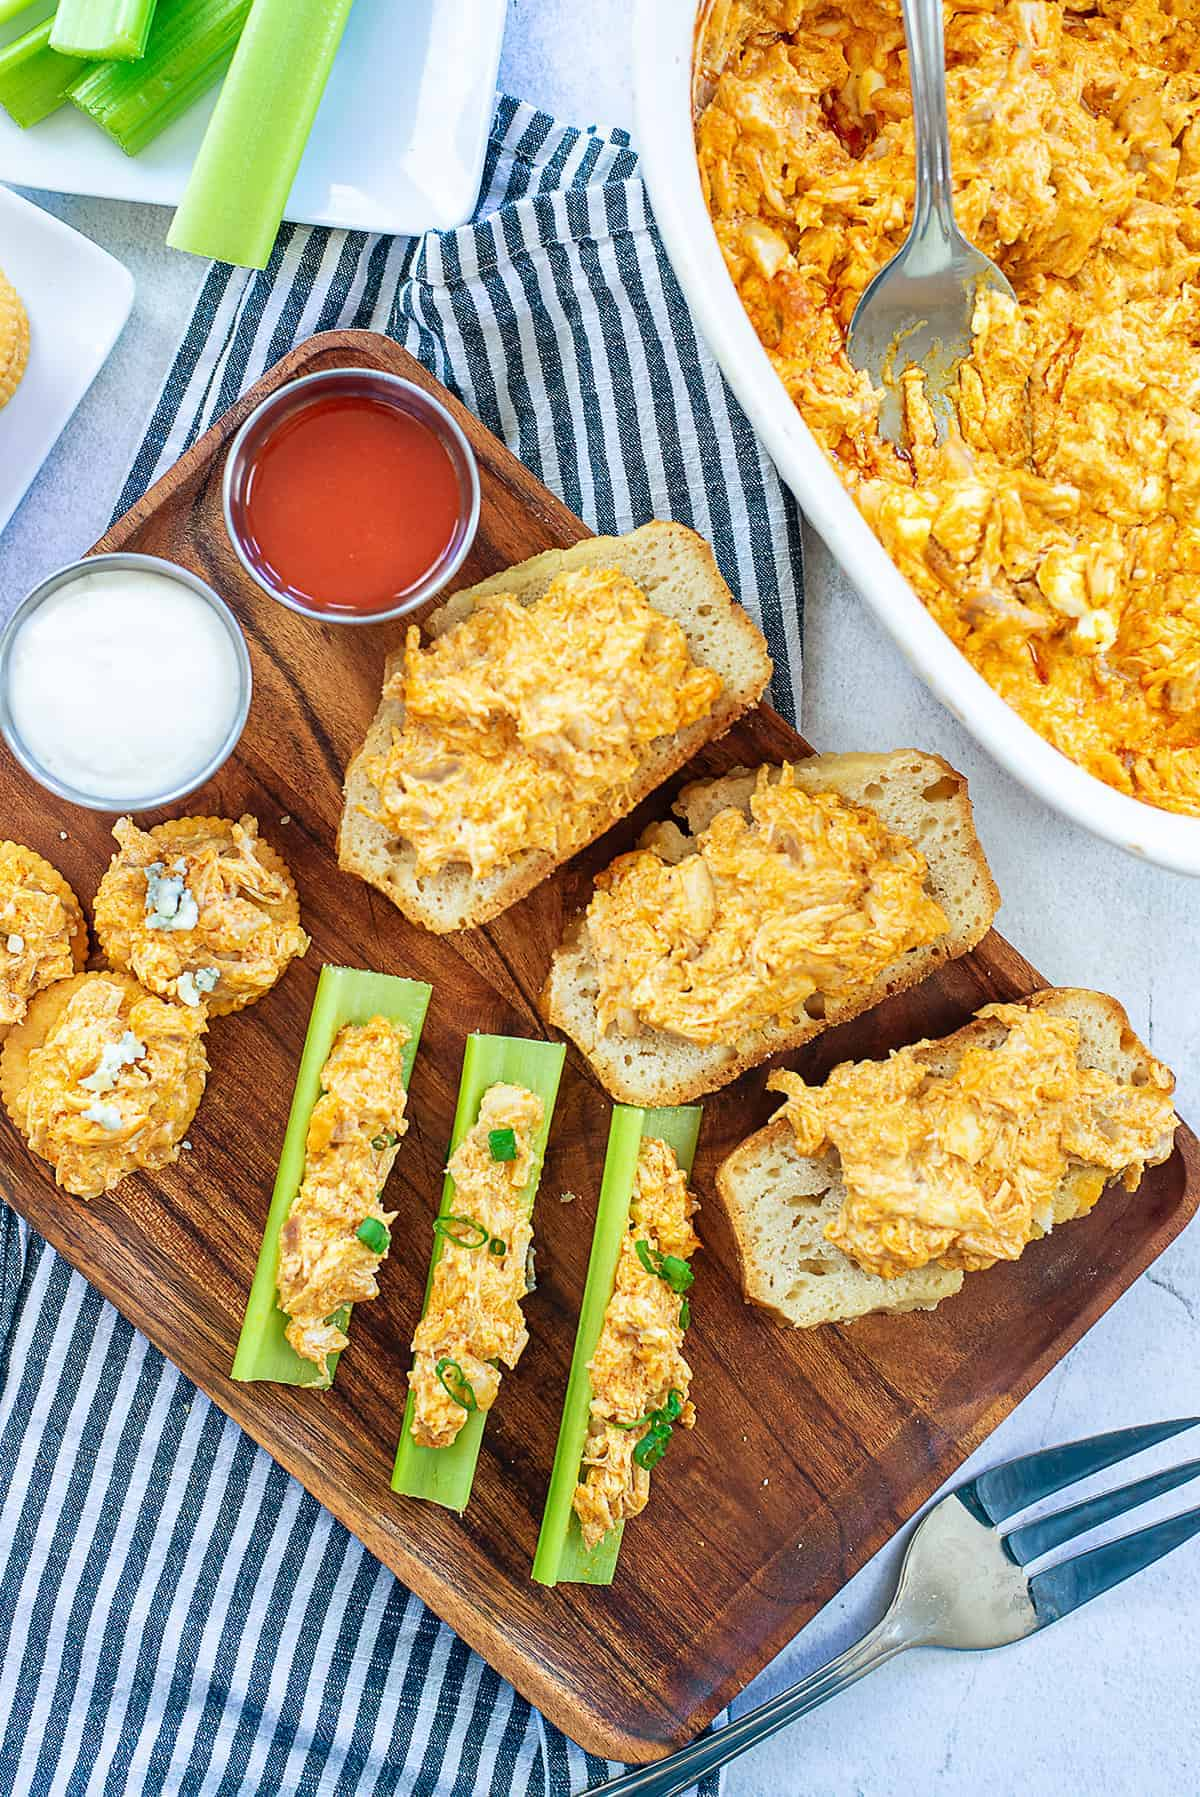 overhead view of buffalo chicken dip on celery and bread.